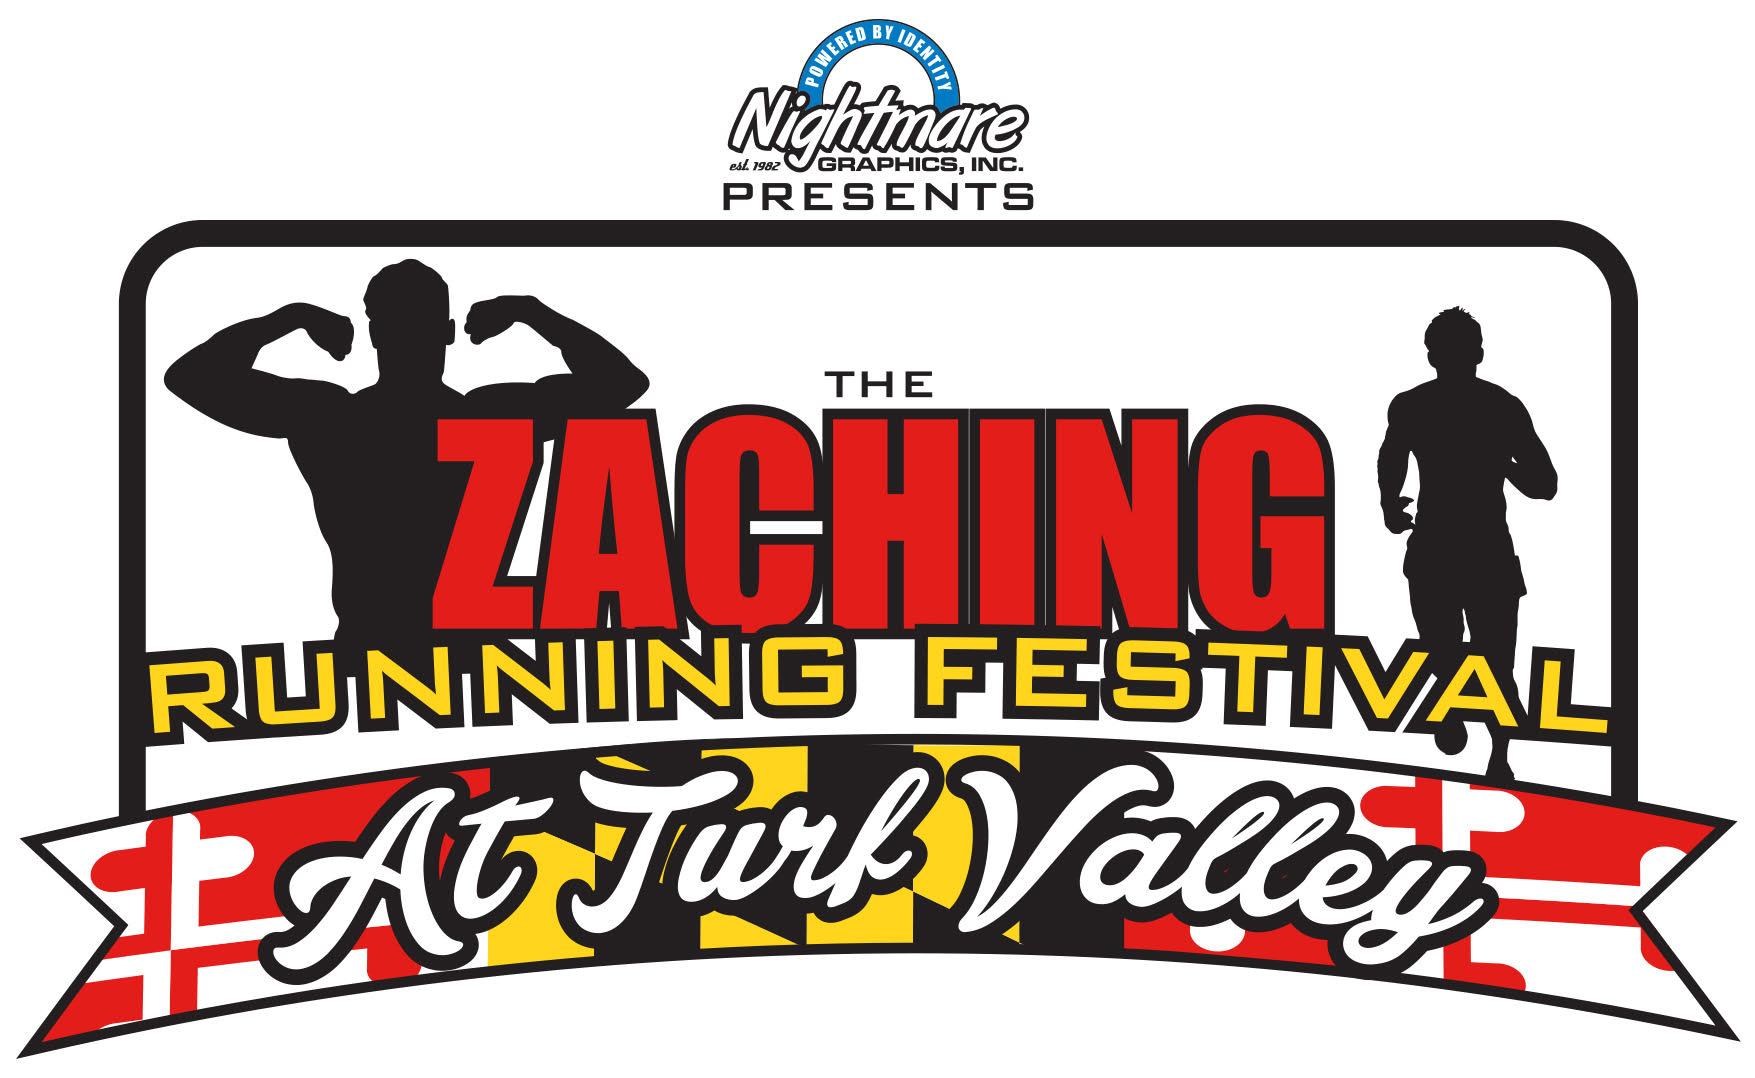 ZACHING Running Festival at Turf Valley